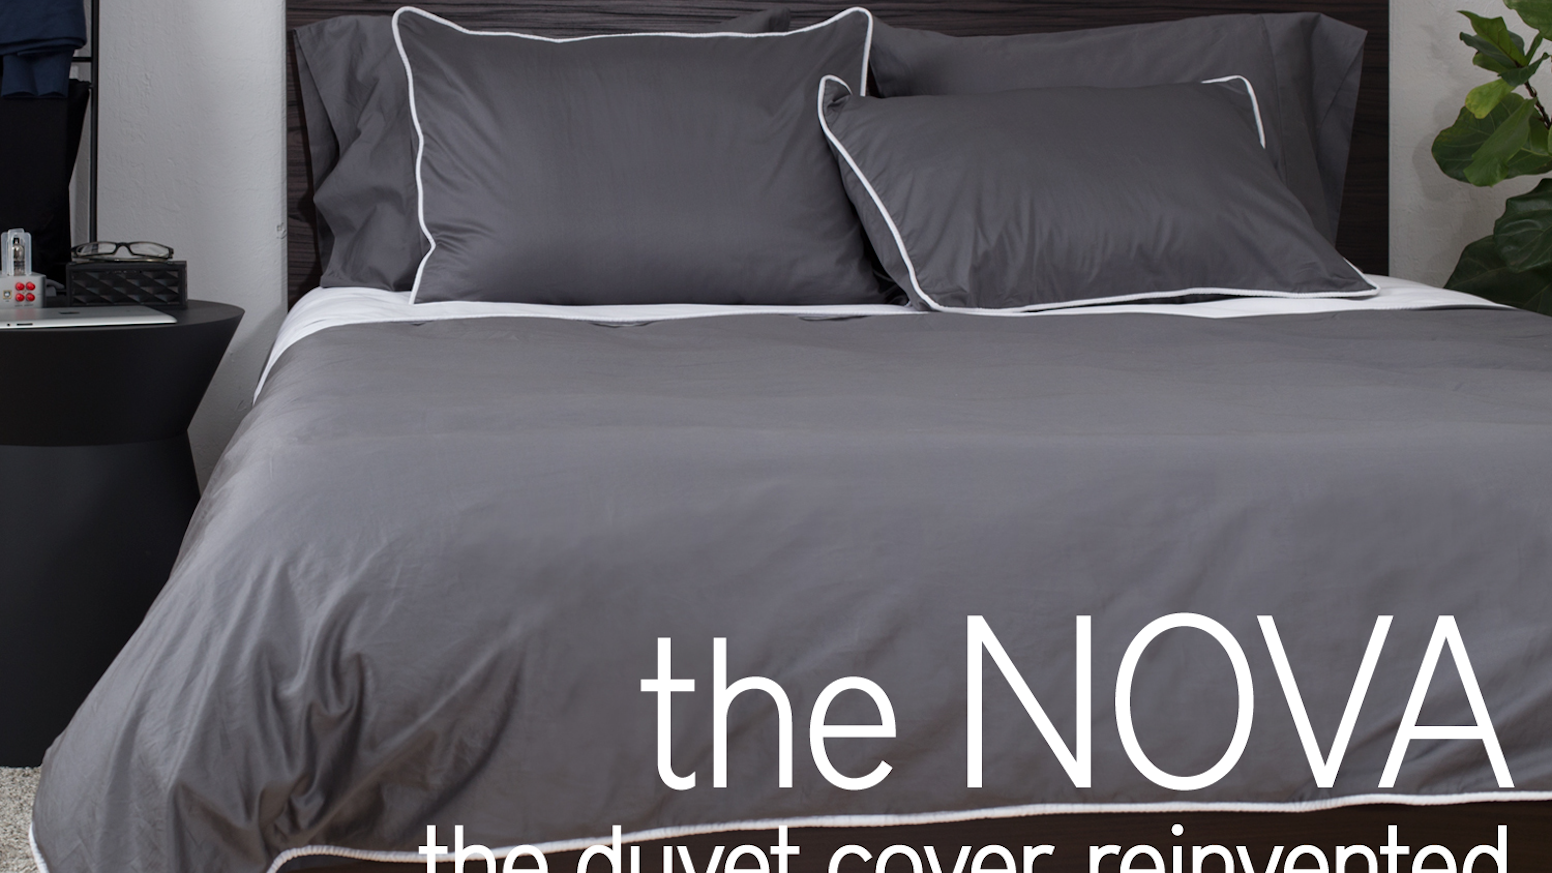 Innovative And Premium Bedding Designed To Forever Transform The Way You Make Your Bed